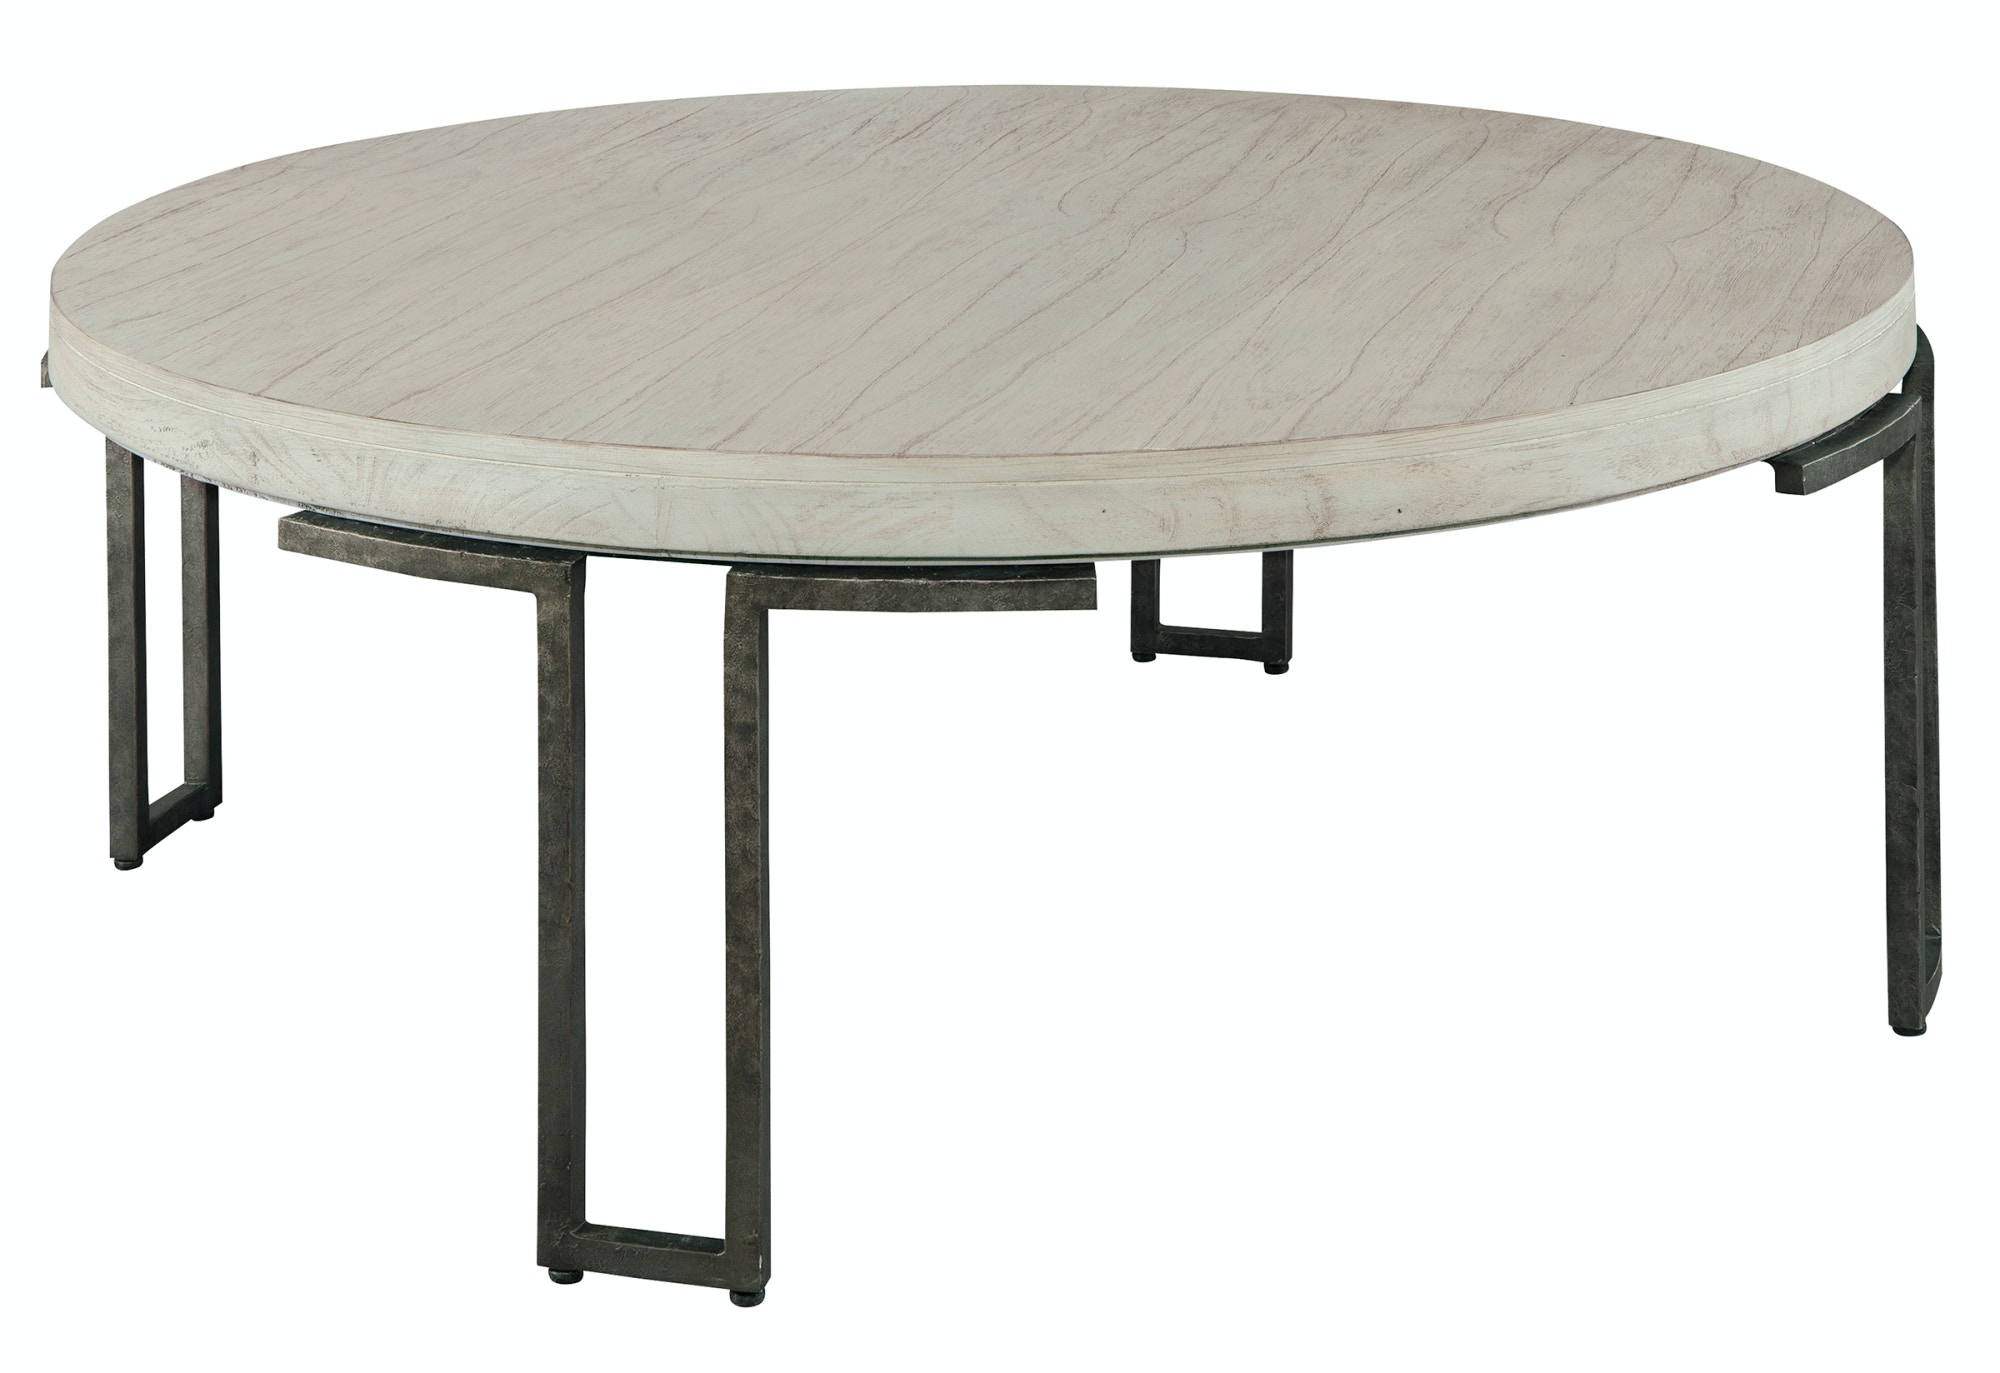 Hekman Furniture Sierra Heights Occasional Round Coffee Table 2 4102 Hekman